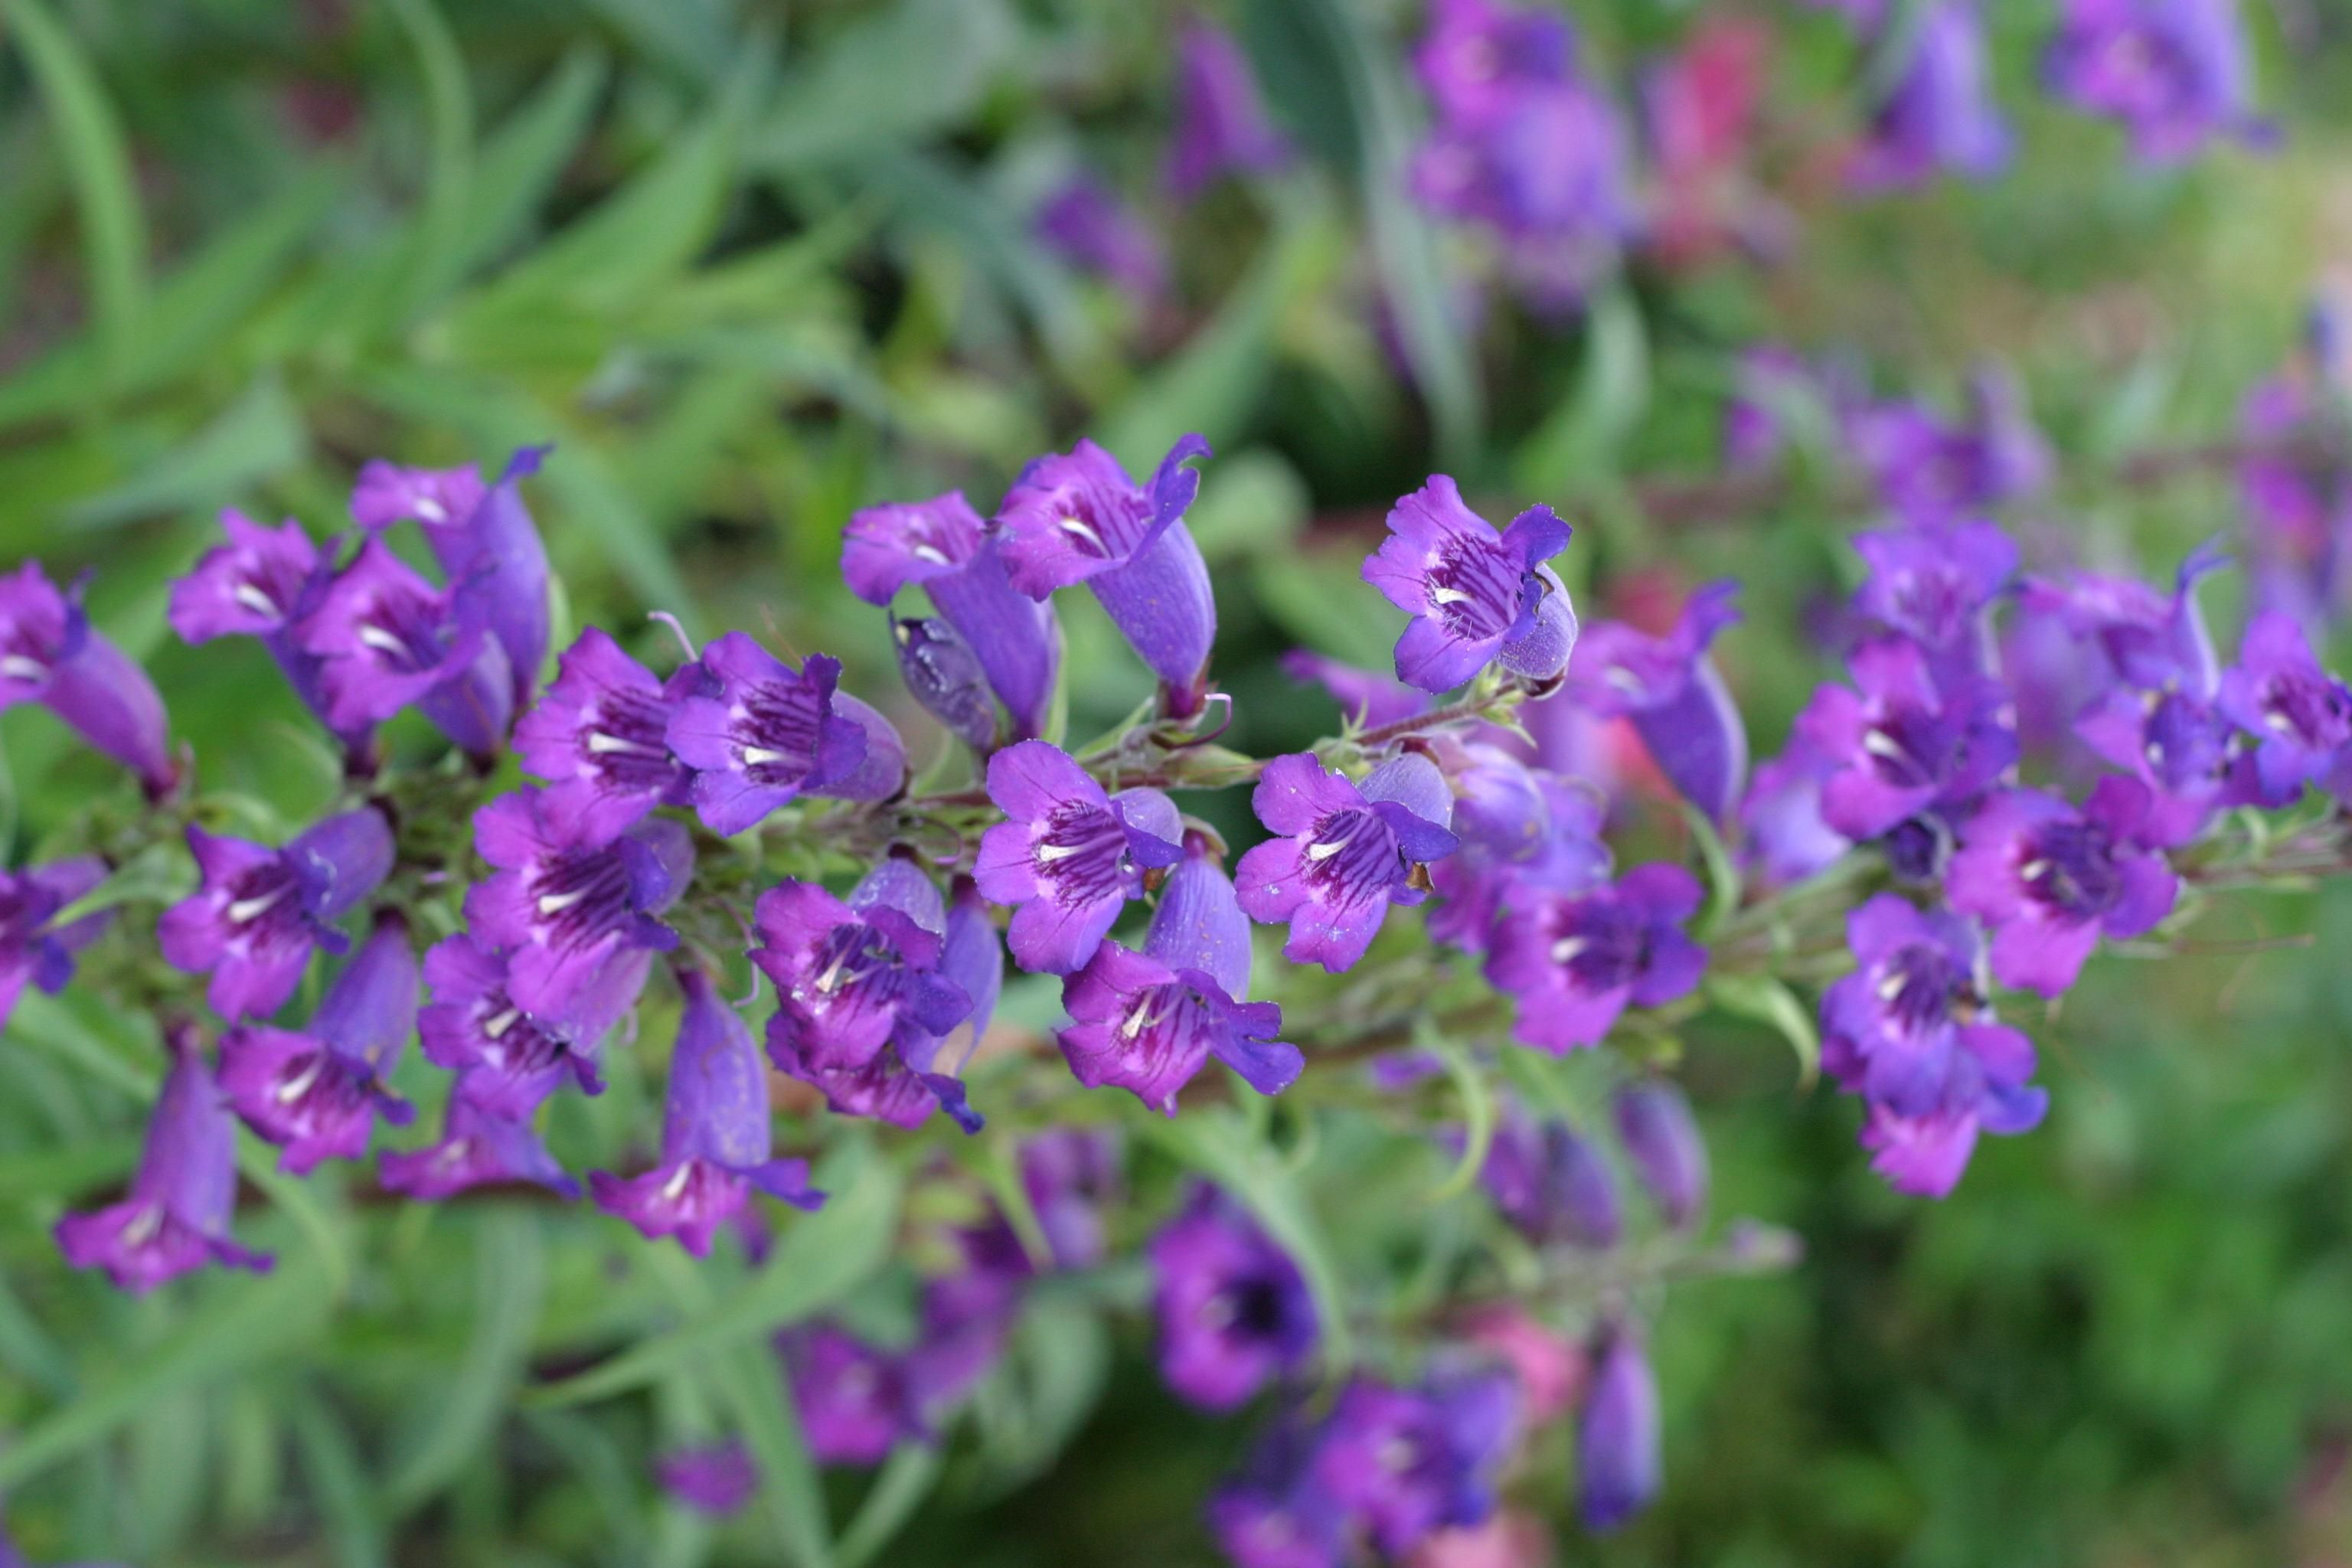 Free picture: small, purple flowers